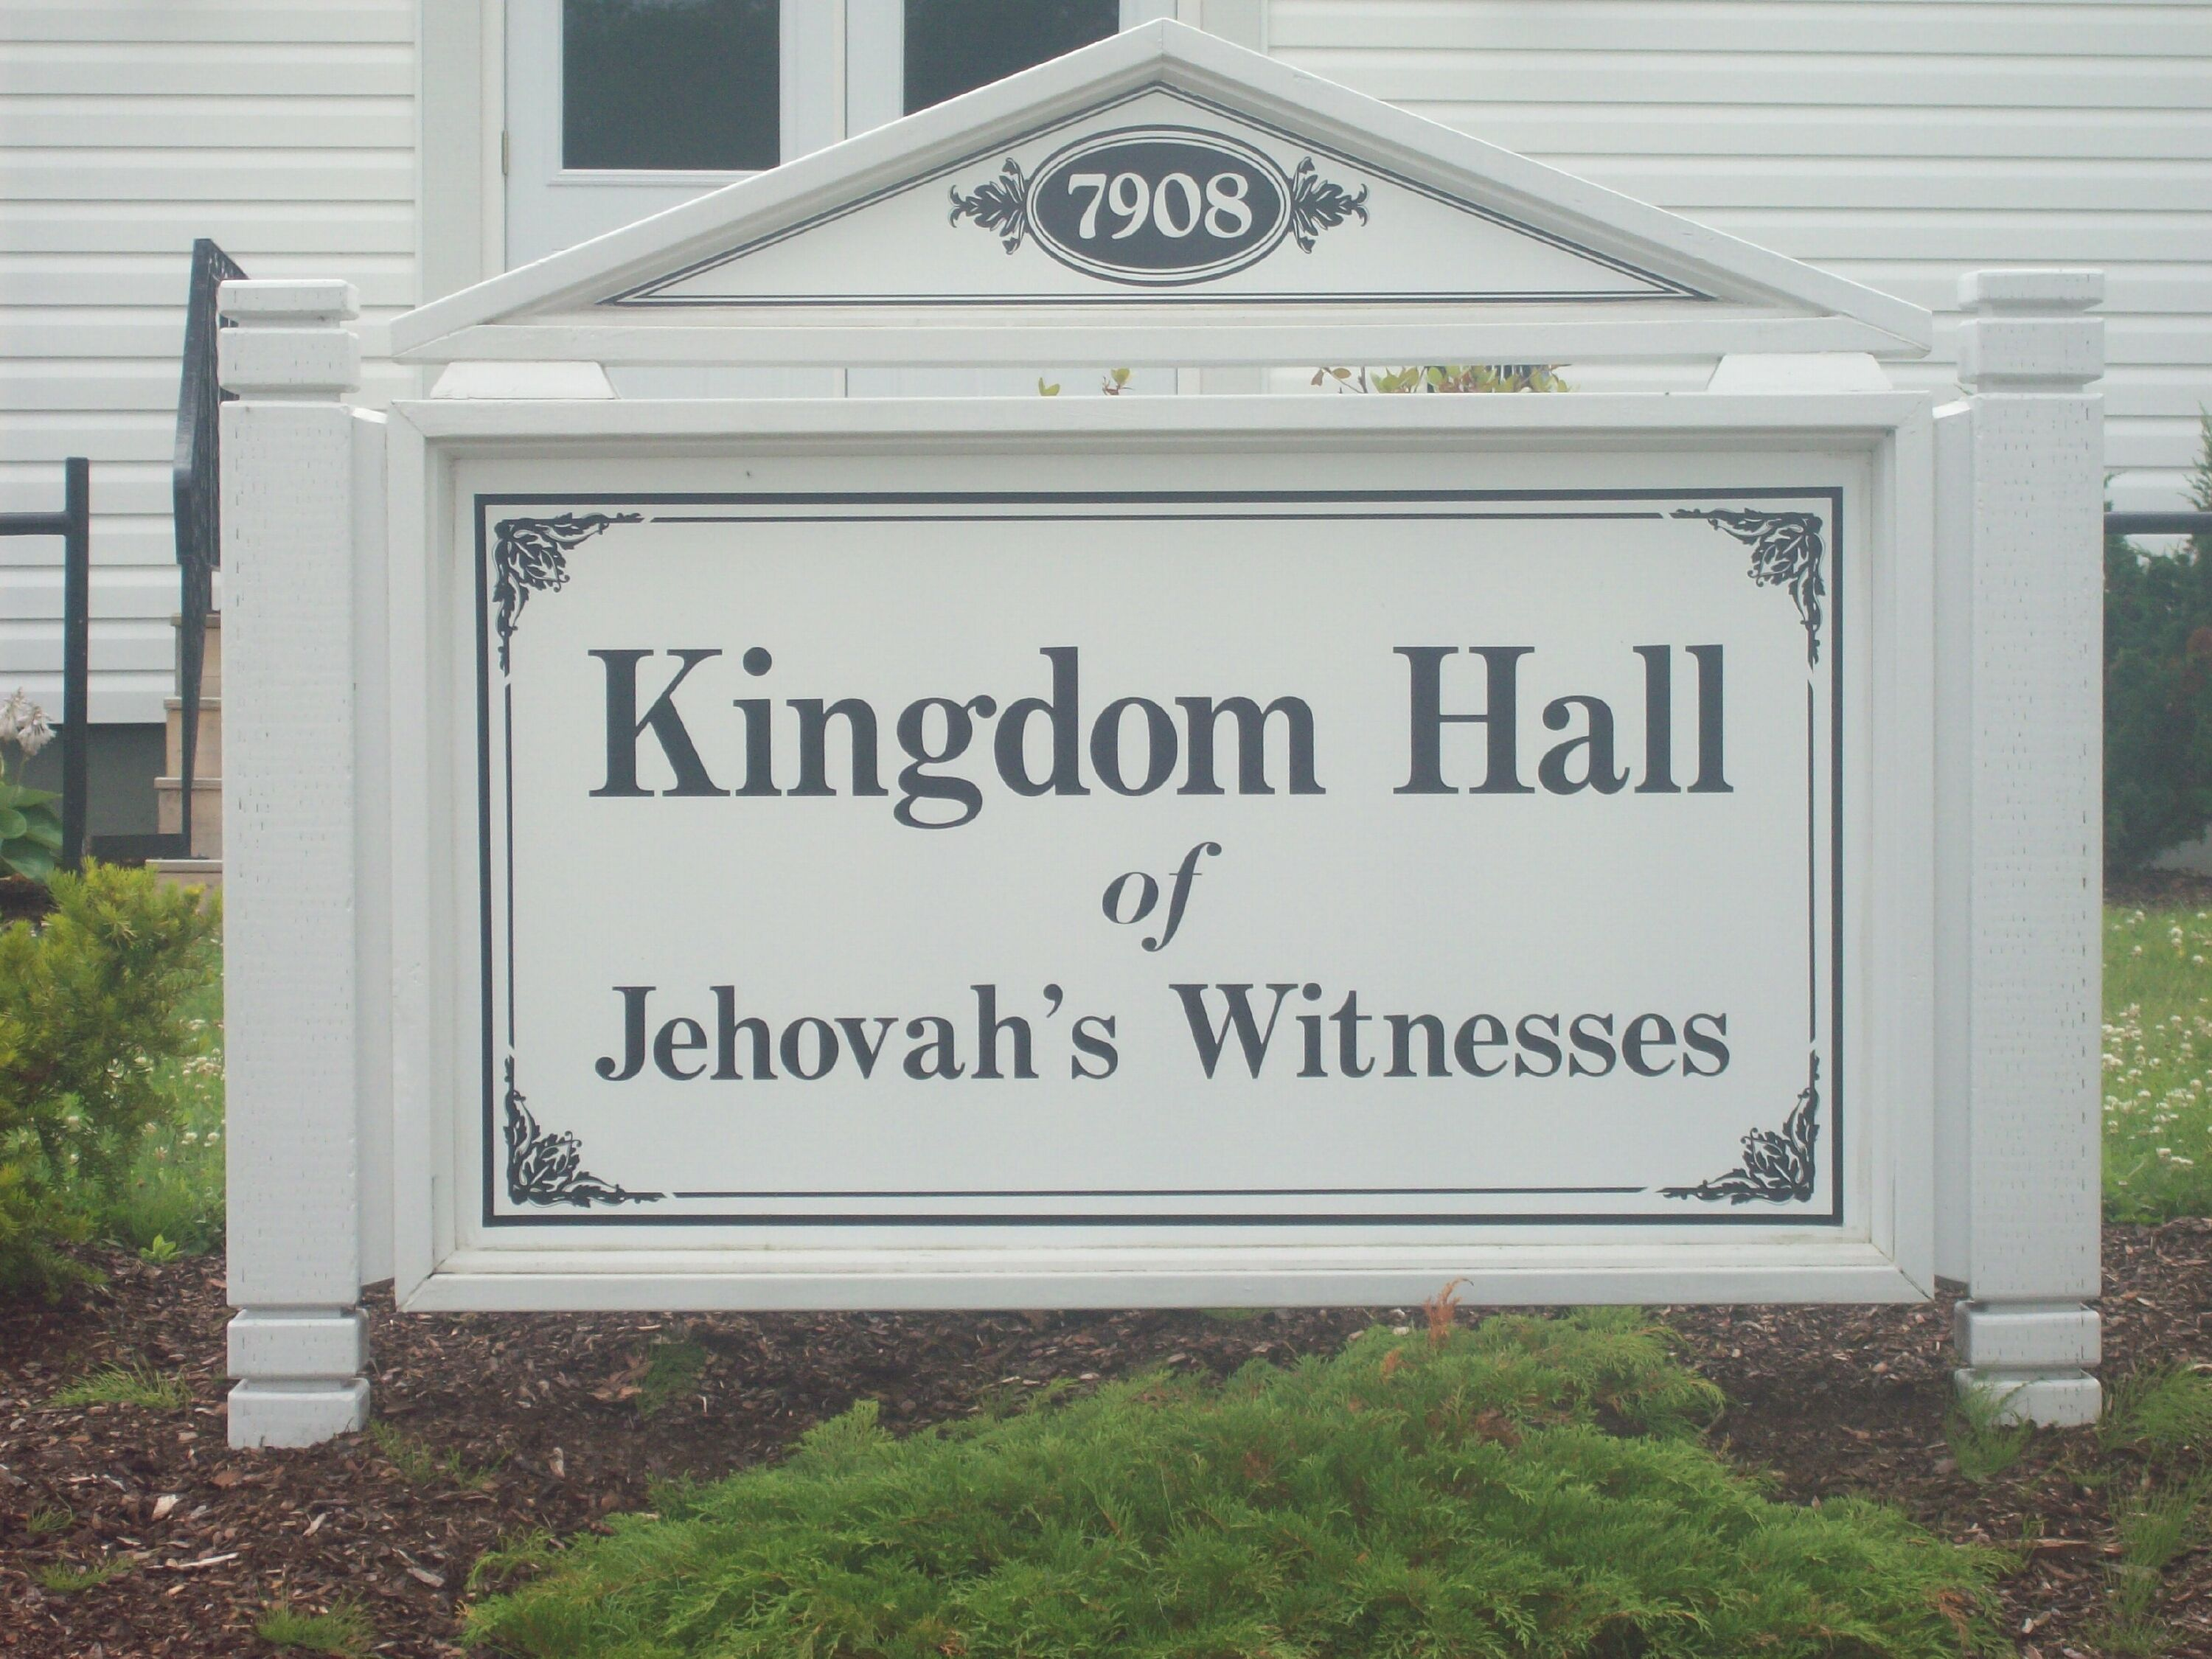 Faq jehovahs witness hookup and marriage